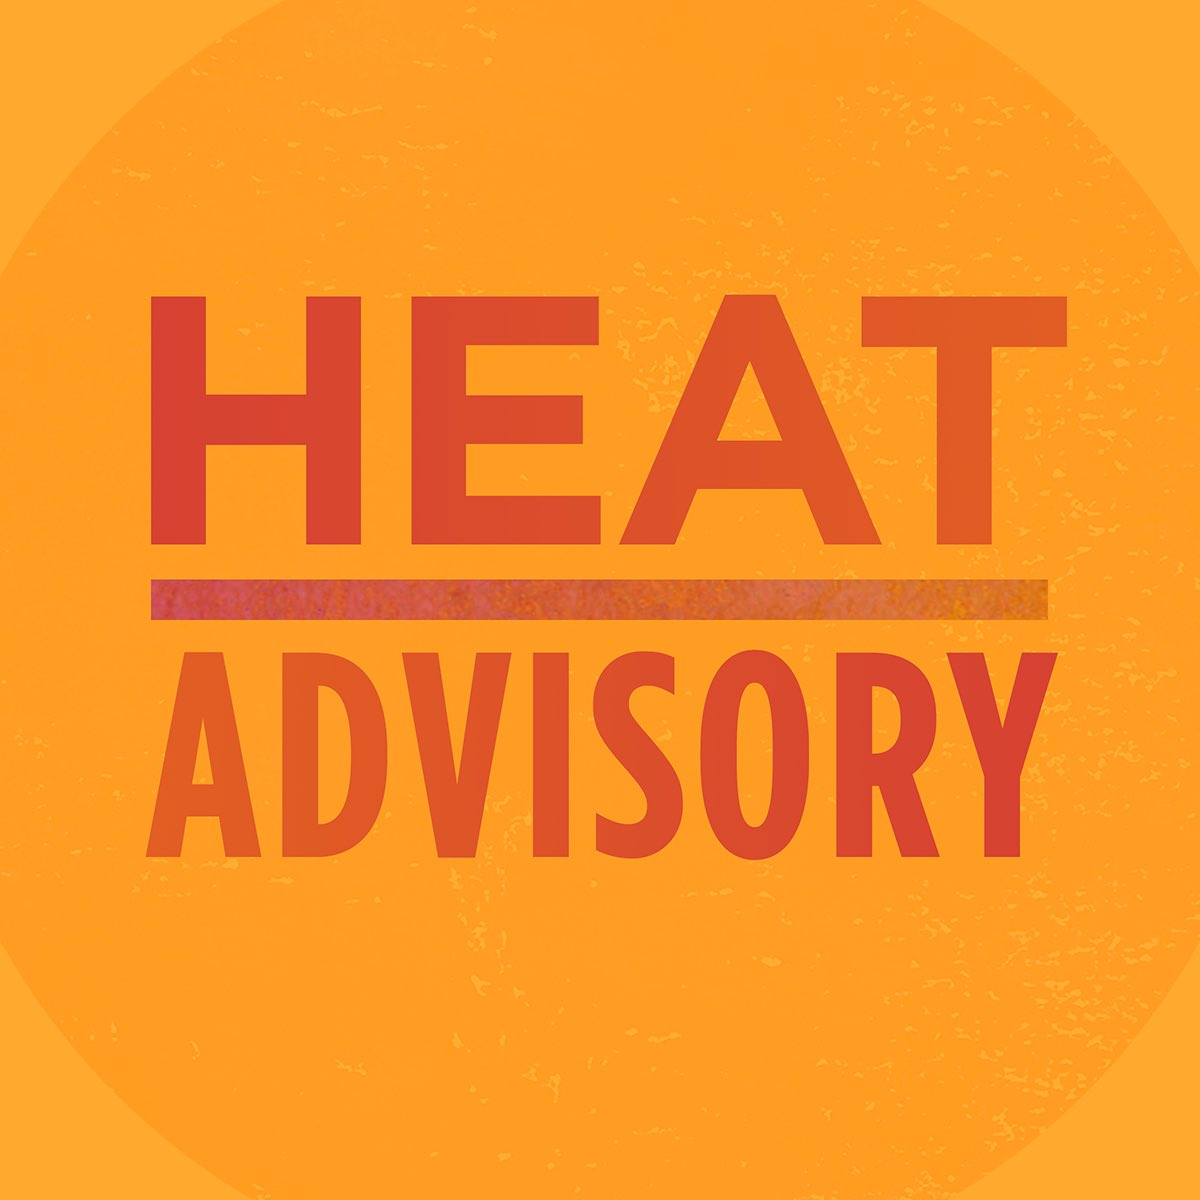 A heat advisory is in effect as of 12 PM today through 6 PM tomorrow.  Stay cool and indoors if possible. Stay hydrated and check in on your neighbors, particularly seniors and anyone with a health condition.